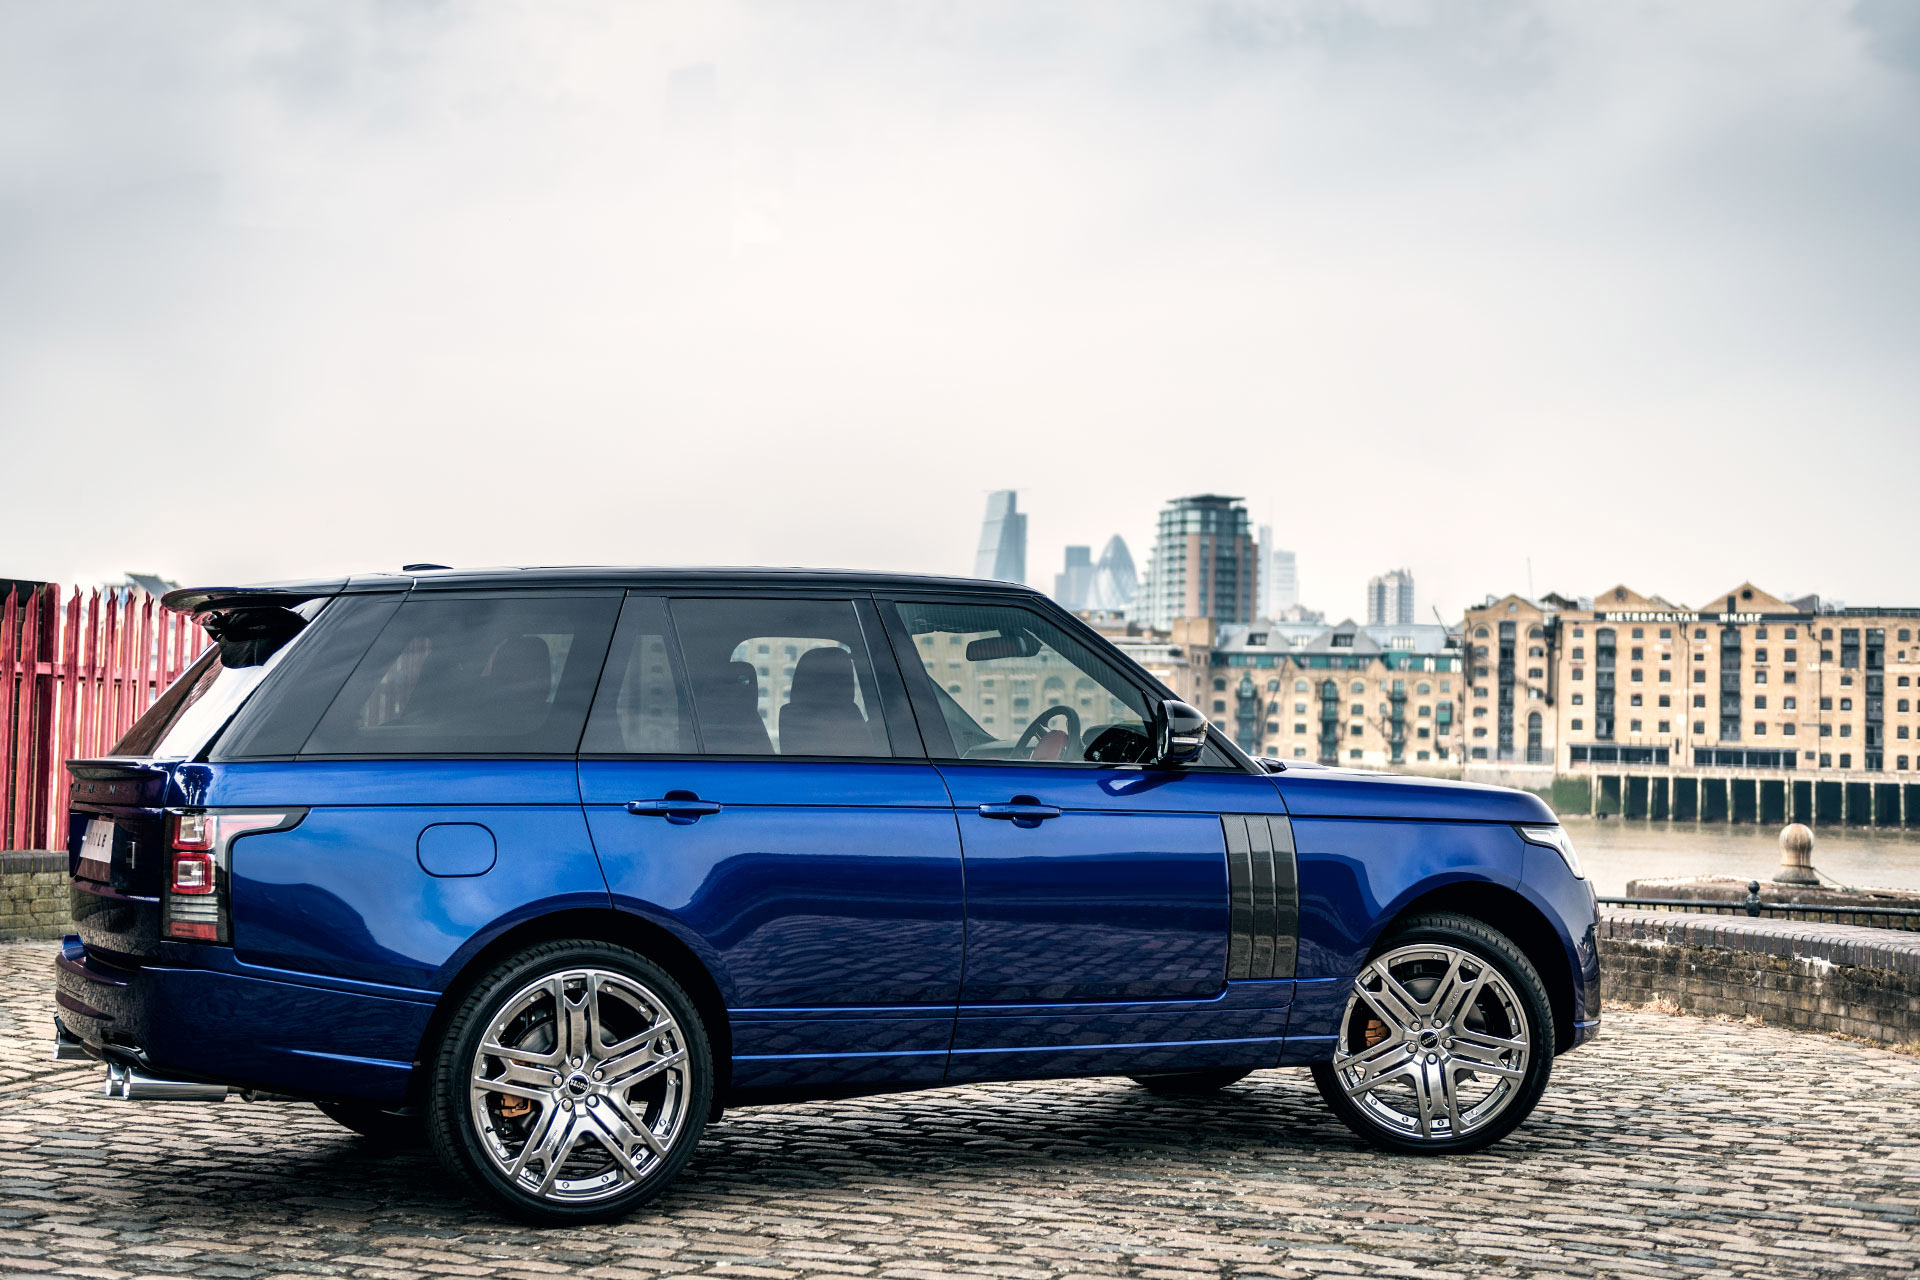 Kahn Range Rover 600 LE Bali Blue Luxury Edition Picture